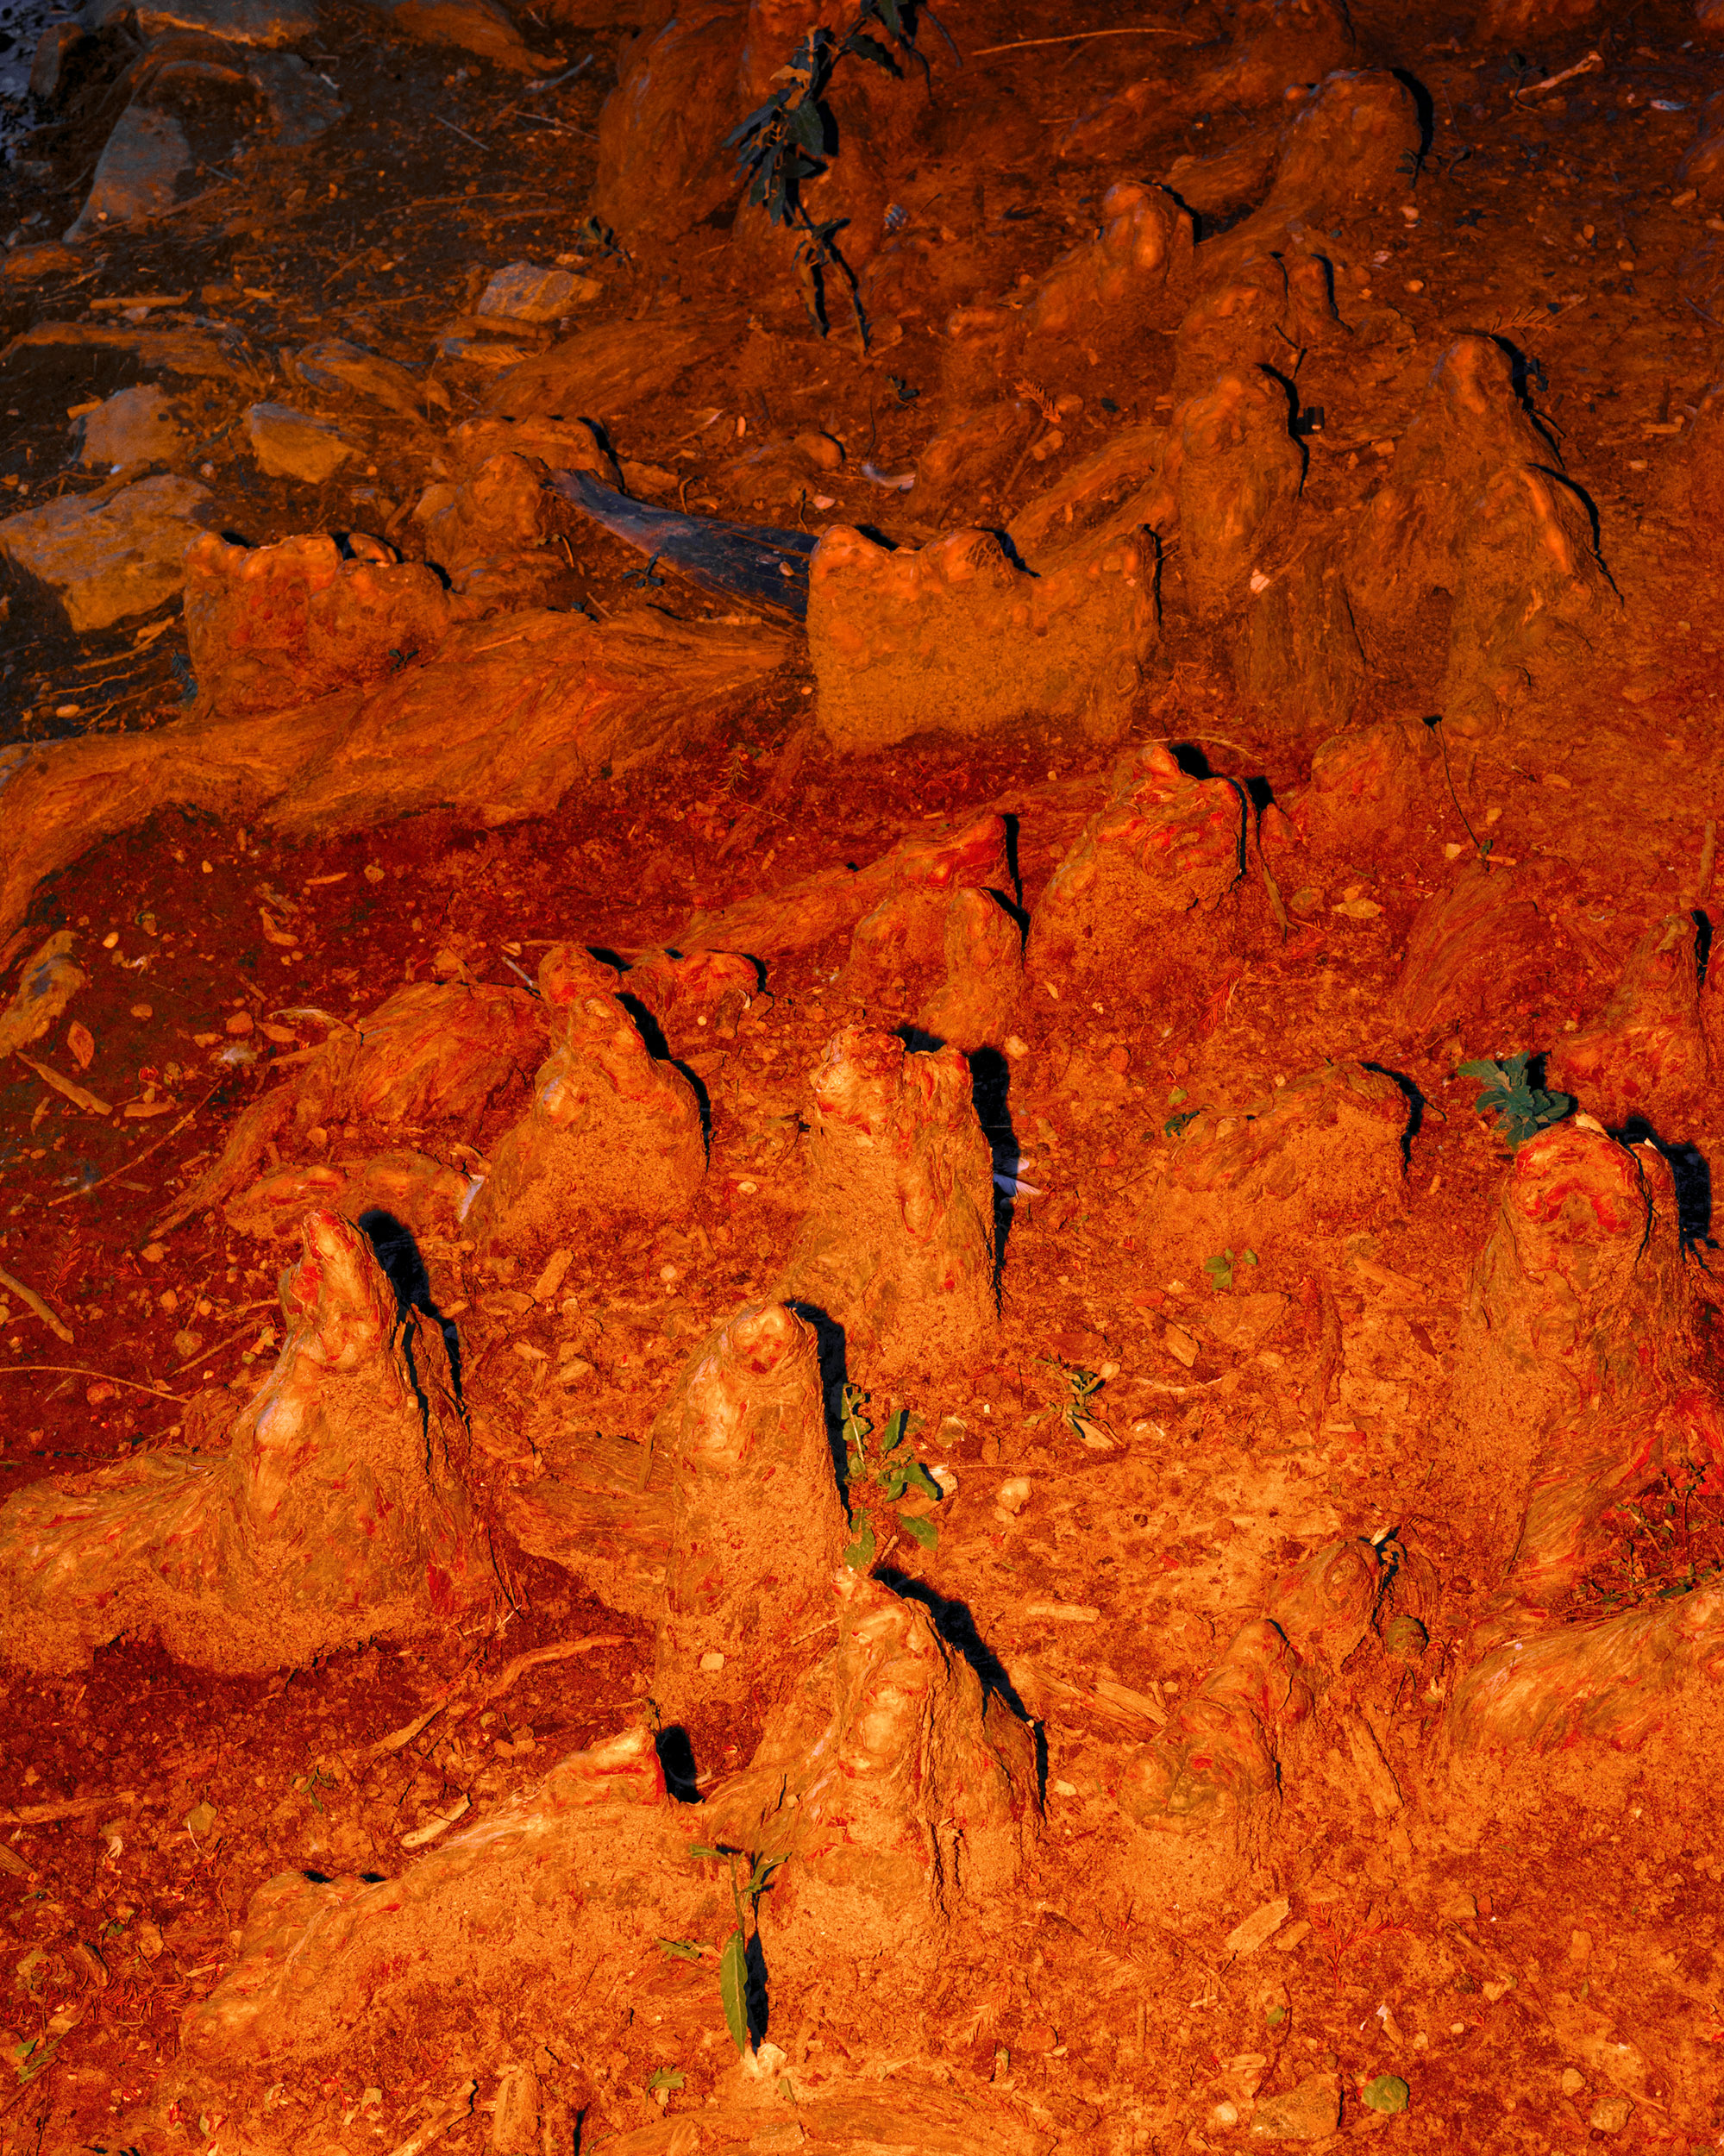 Red Earth with Tree Stumps